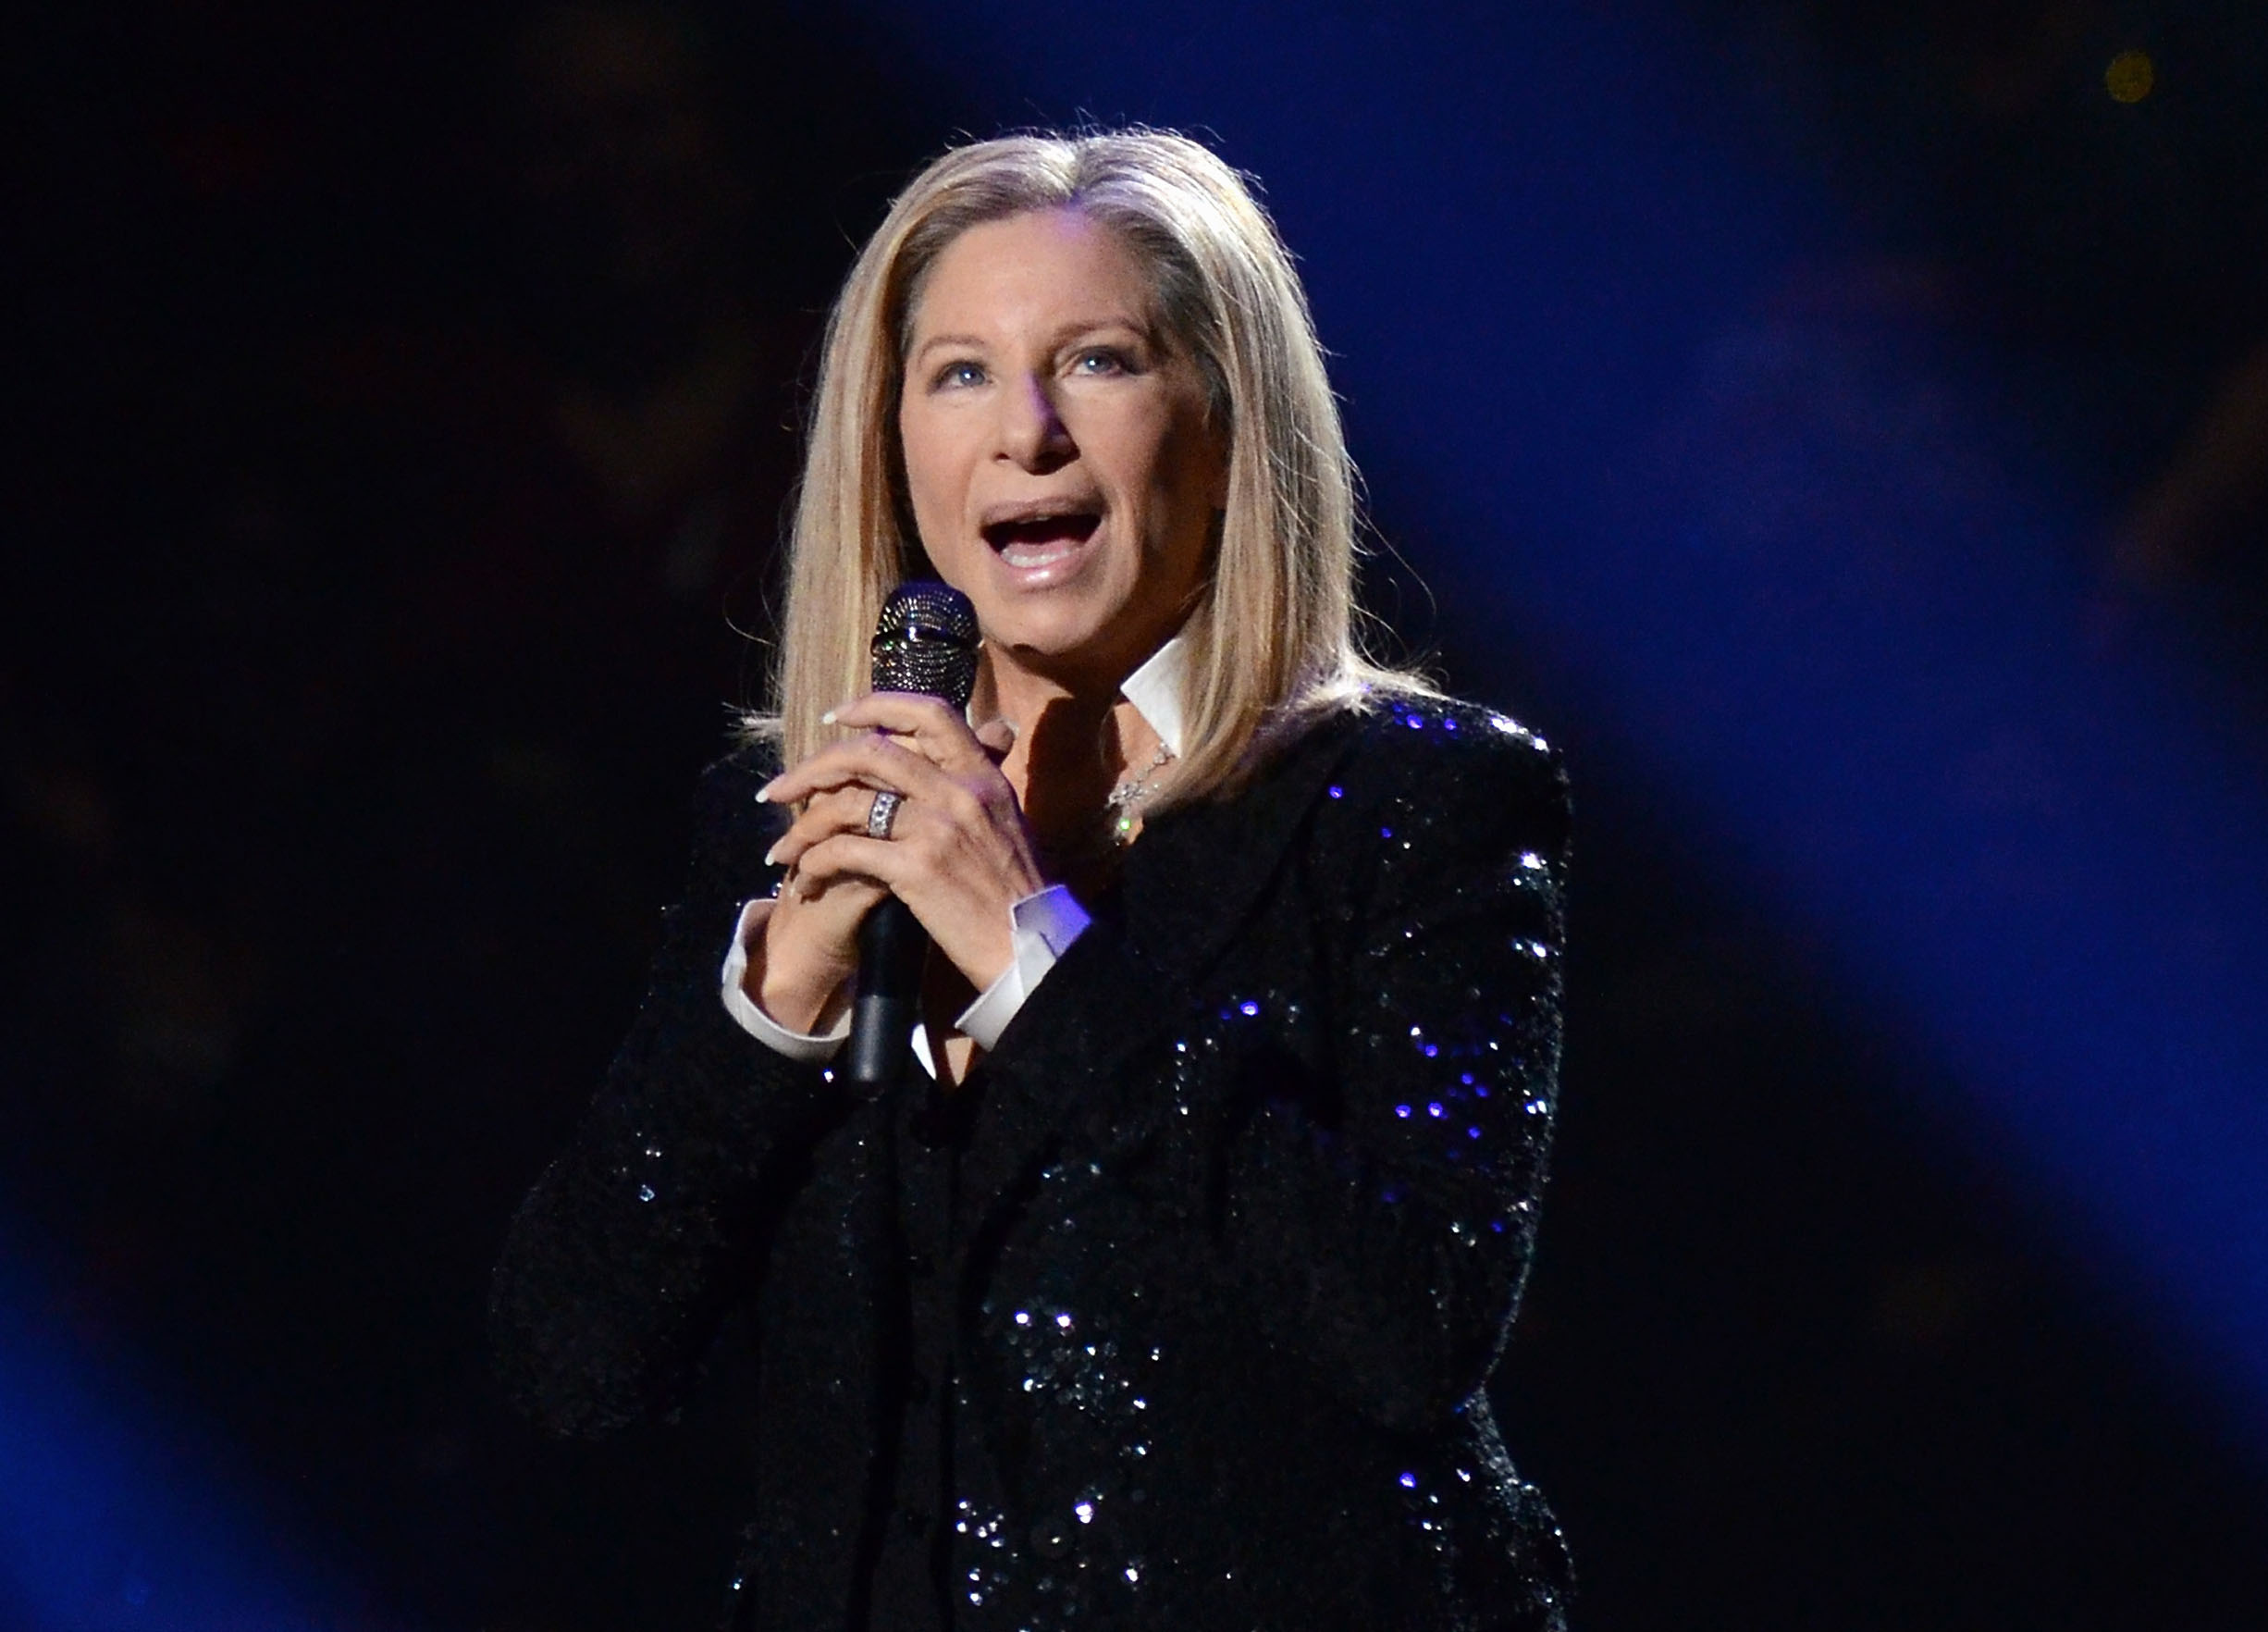 Barbra Streisand convinces Apple to change how Siri says her name